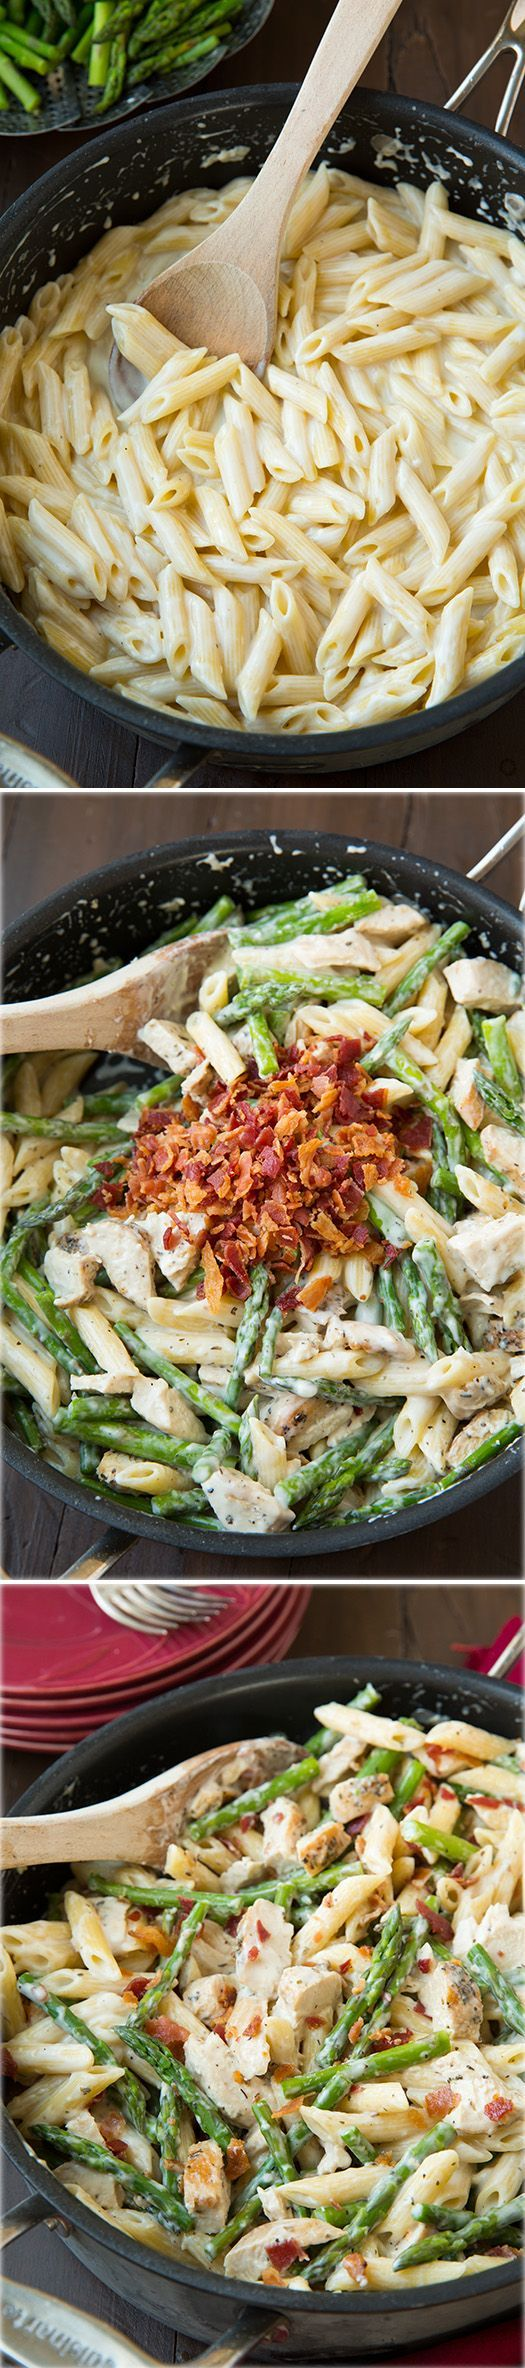 Creamy Chicken and Asparagus Pasta with Bacon #pasta #bacon #recipe